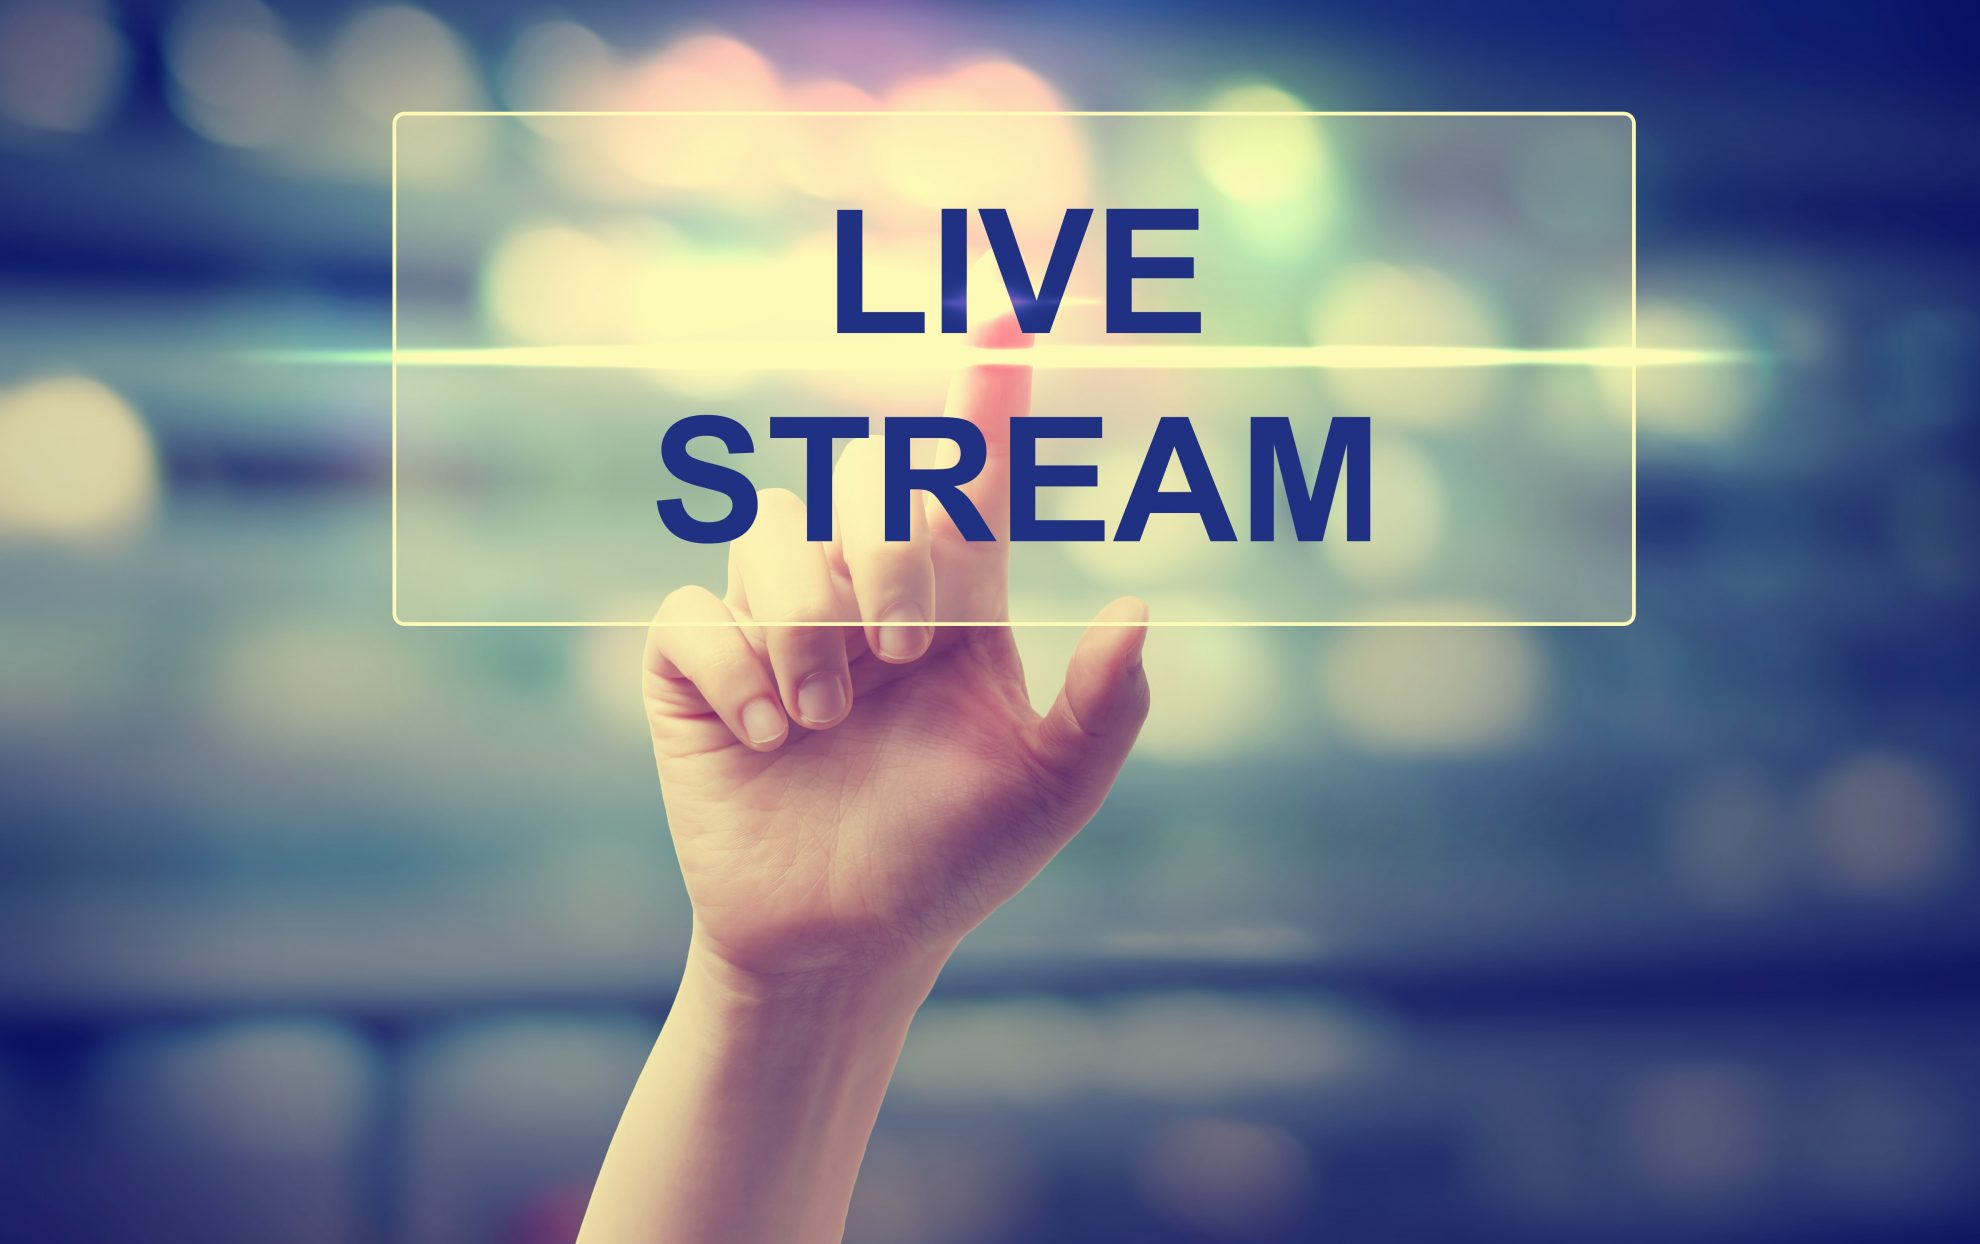 Seminar: How to Effectively Use Live Streaming for Corporate Marketing & Communications (Nov 30)